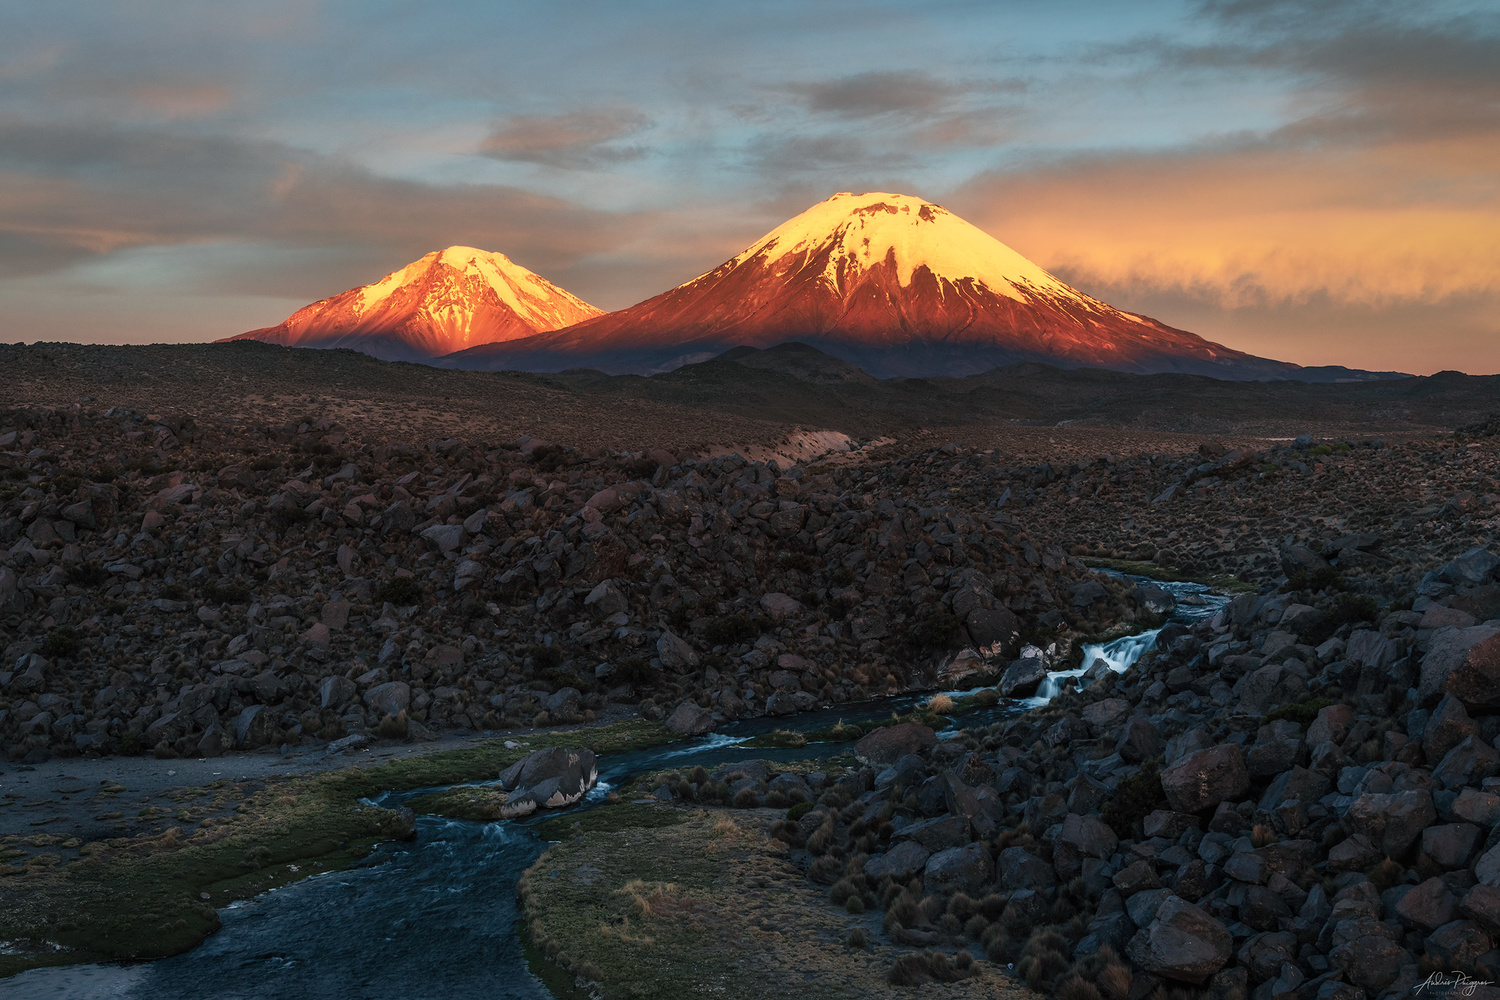 Payachatas volcanoes at sunset by Andres Puiggros